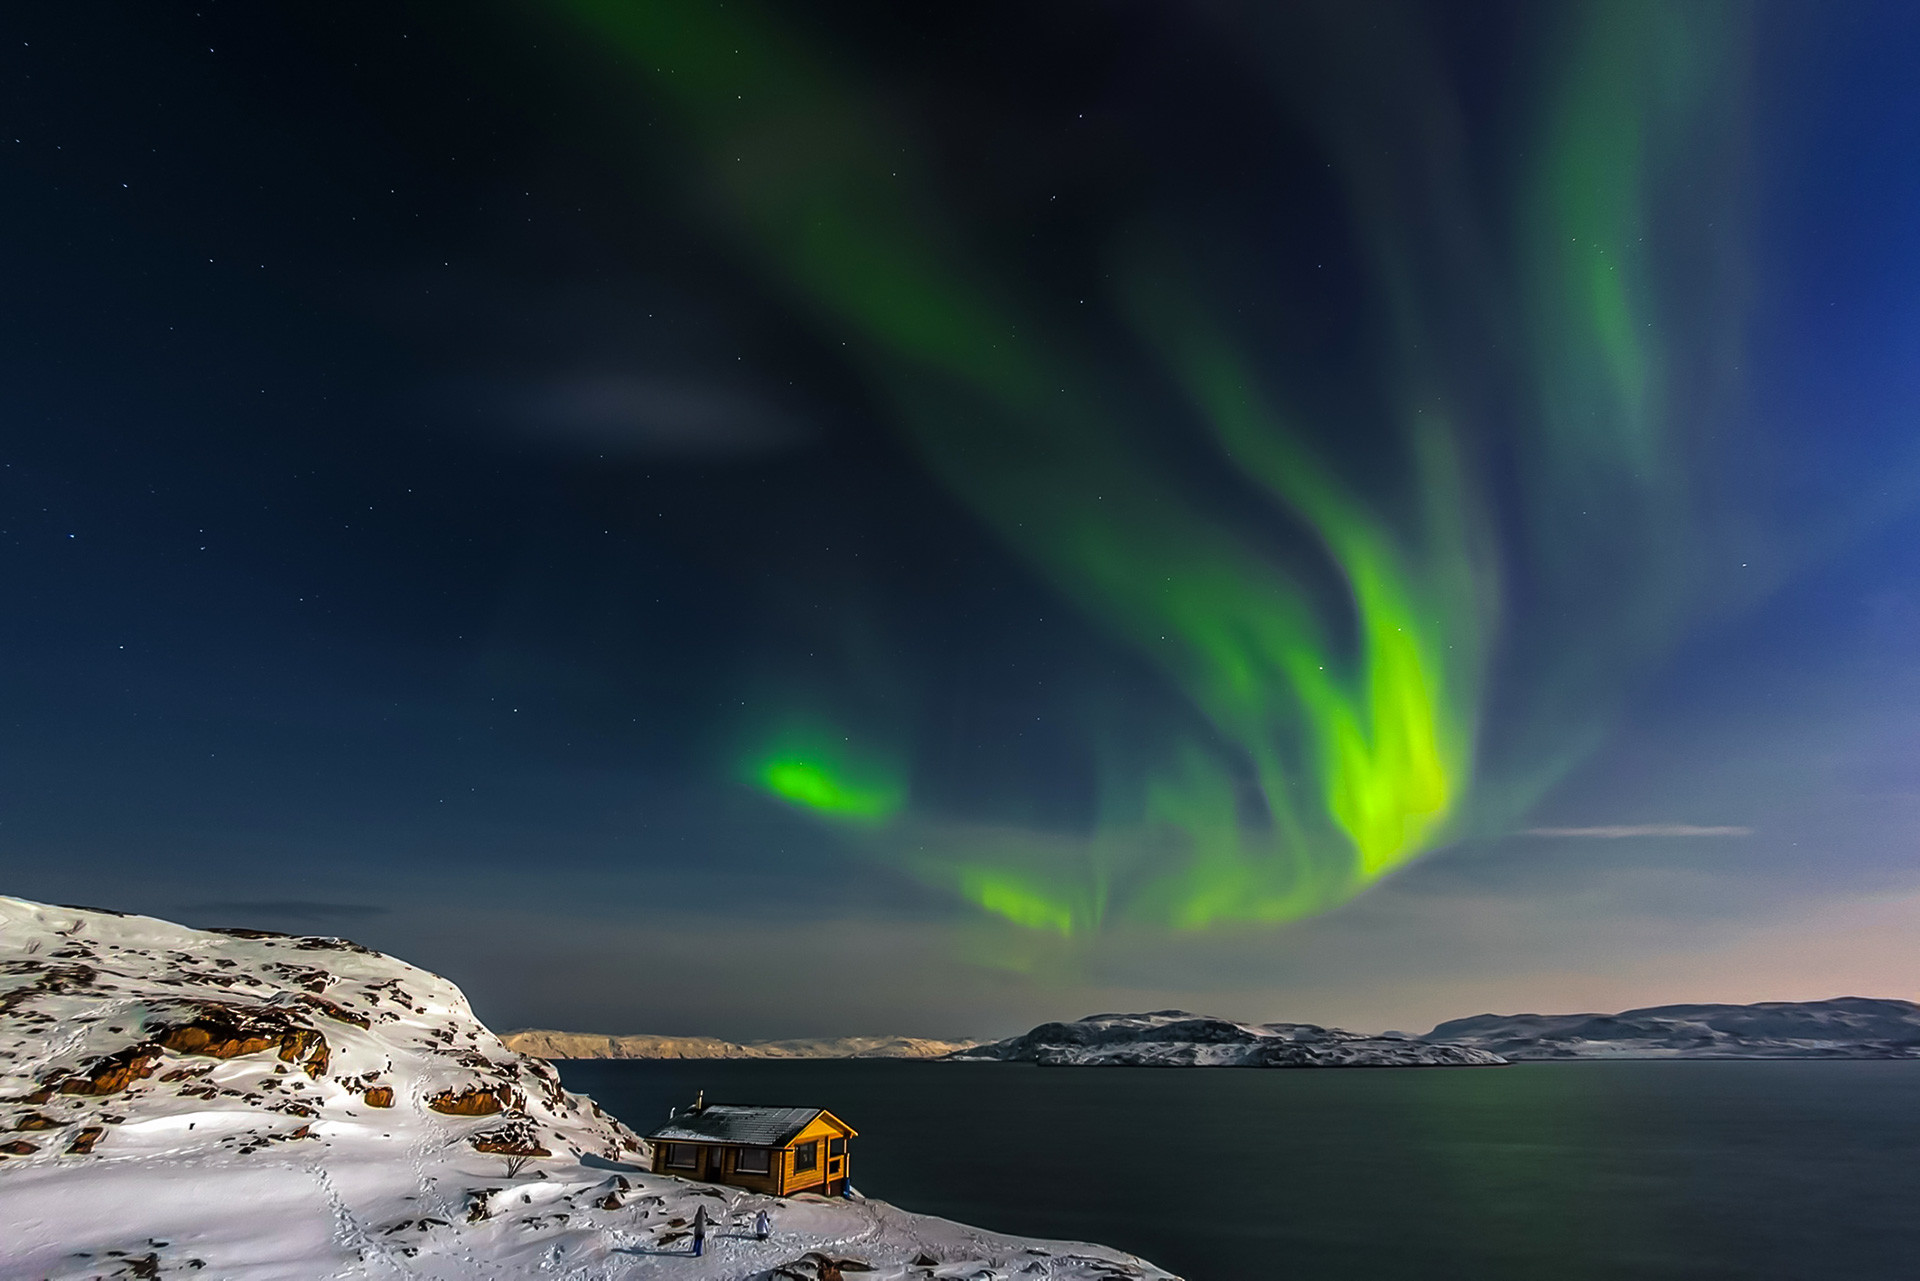 A cozy house on the coast of the Barents Sea and the aurora. Kola Peninsula, Murmansk region.